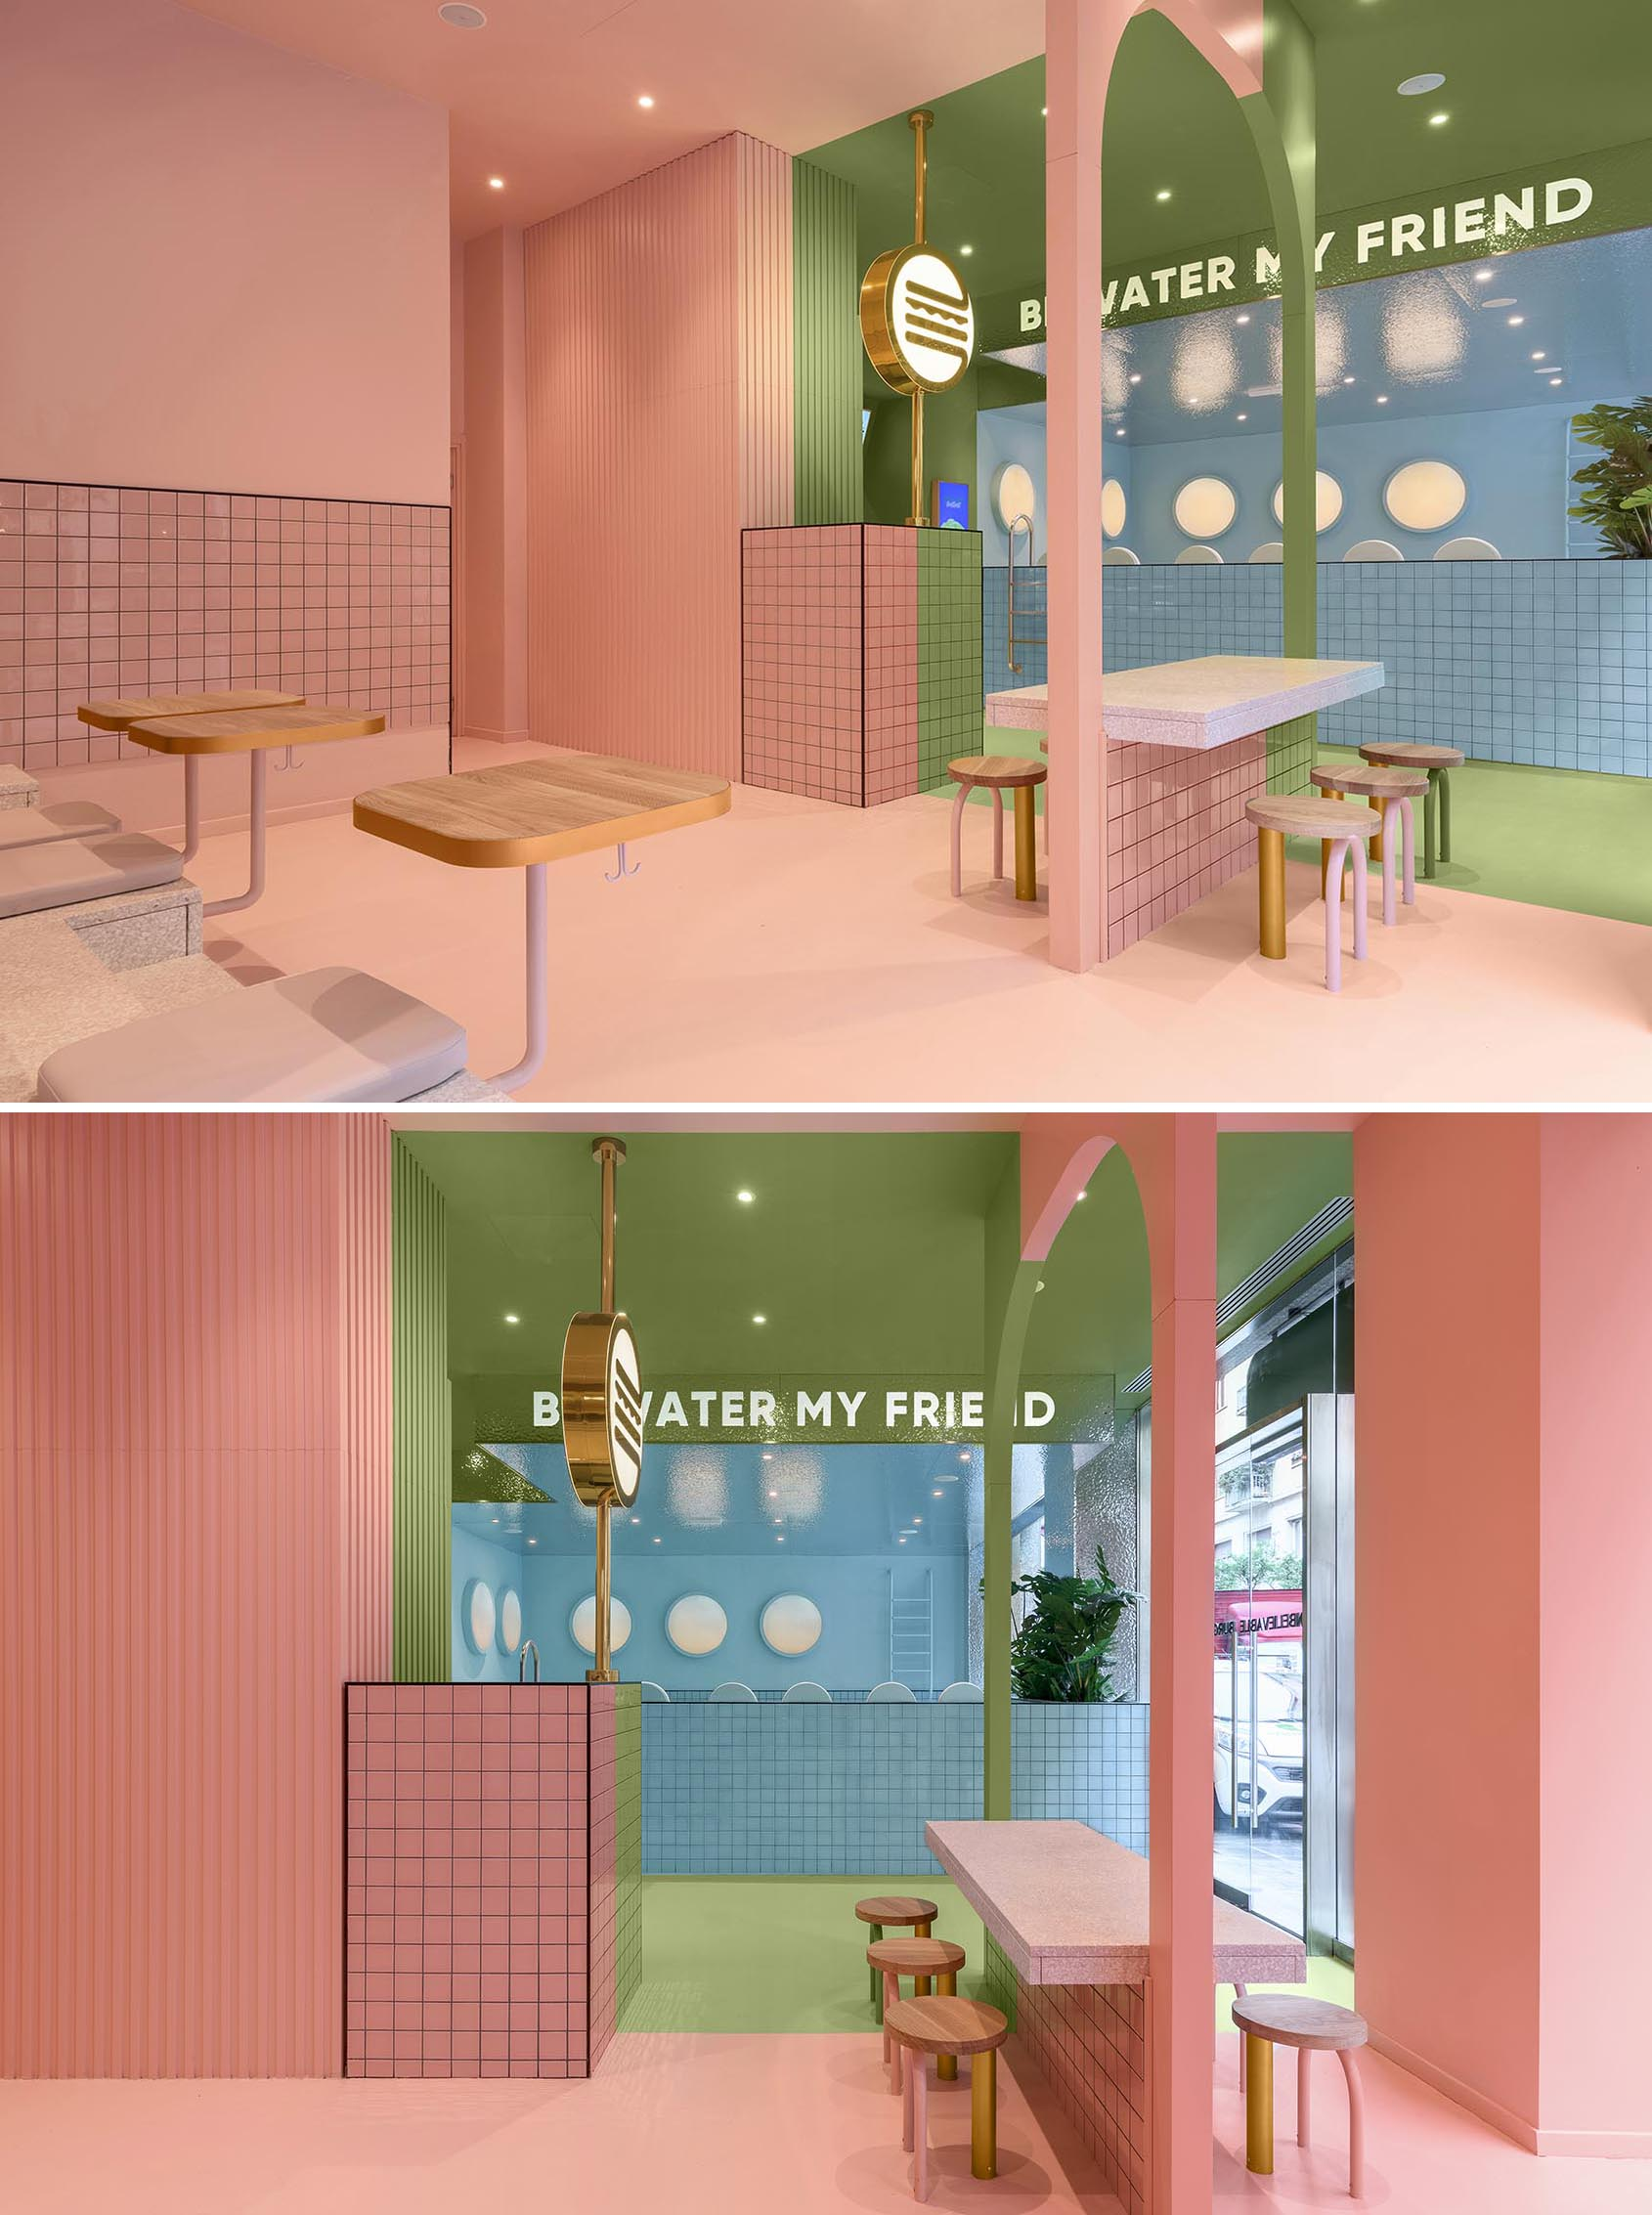 A modern restaurant interior with a pink zone, green zone, and blue zone.